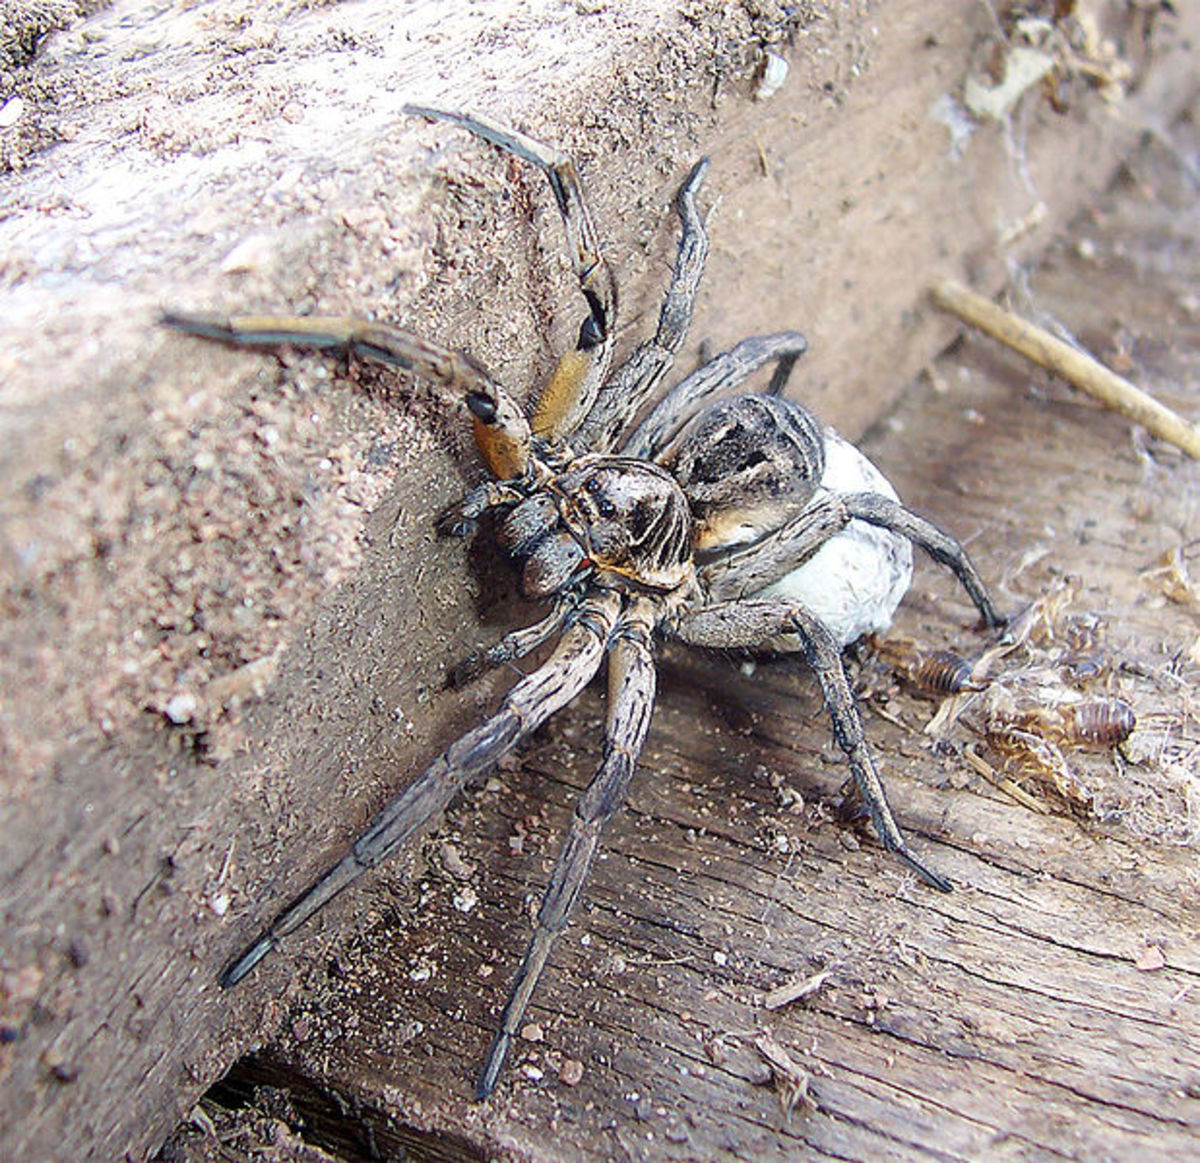 Female wolf spider with her egg sac.